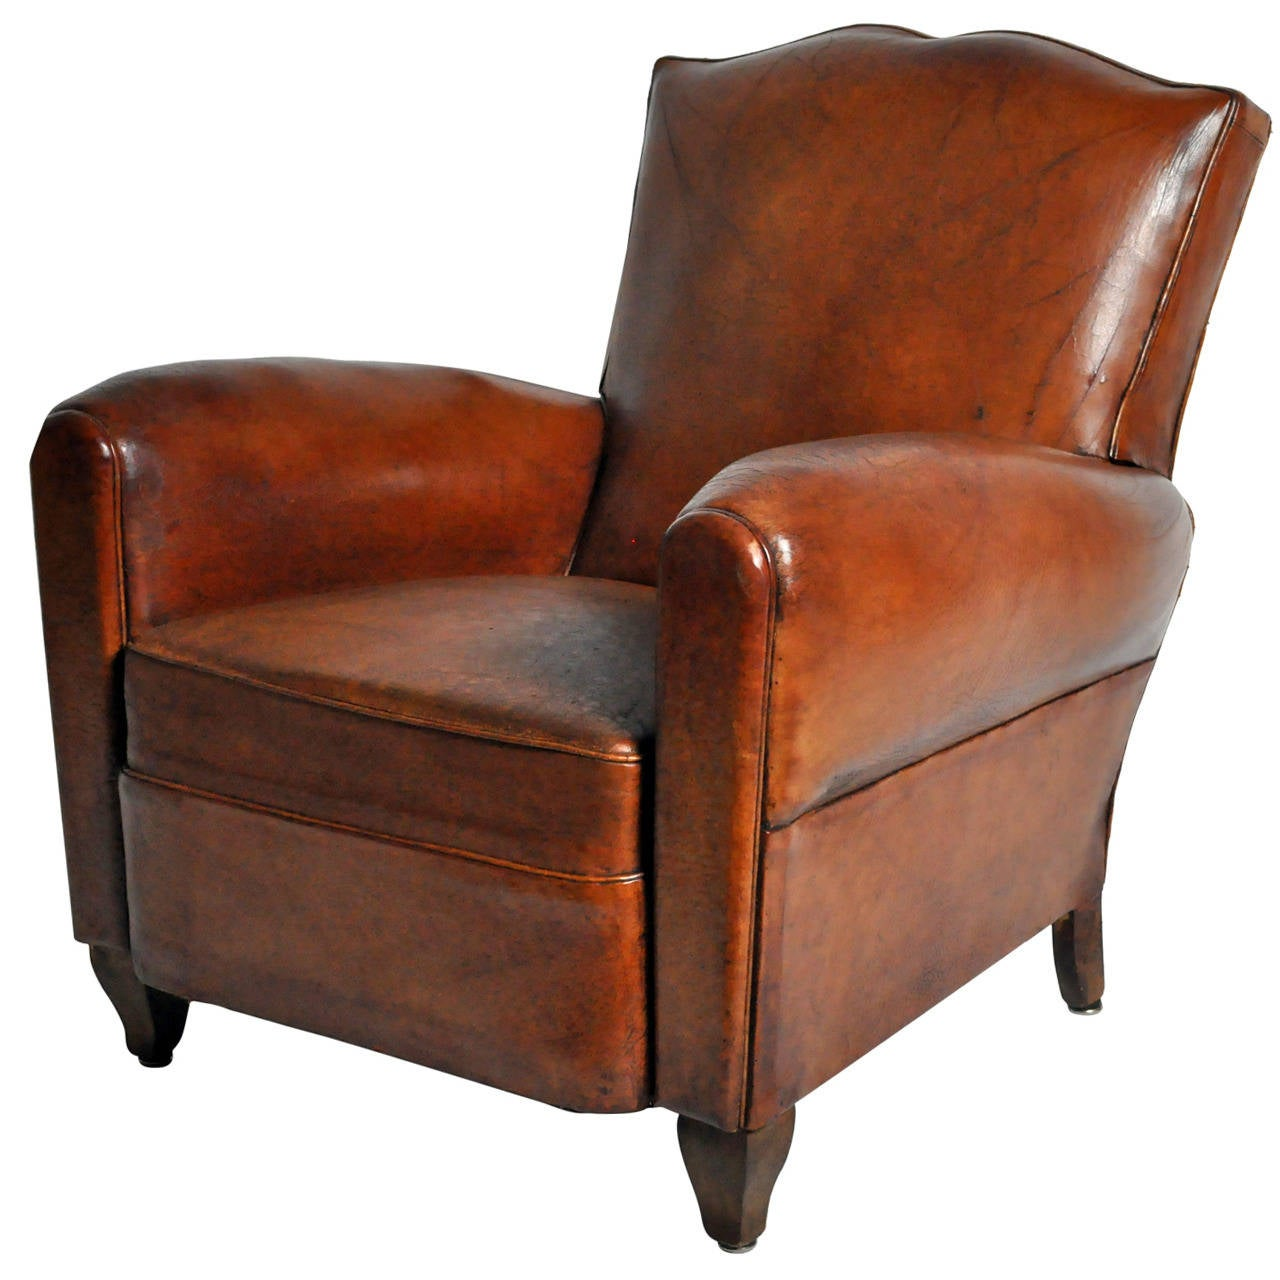 Artistic Chairs Art Deco Leather Club Chair At 1stdibs